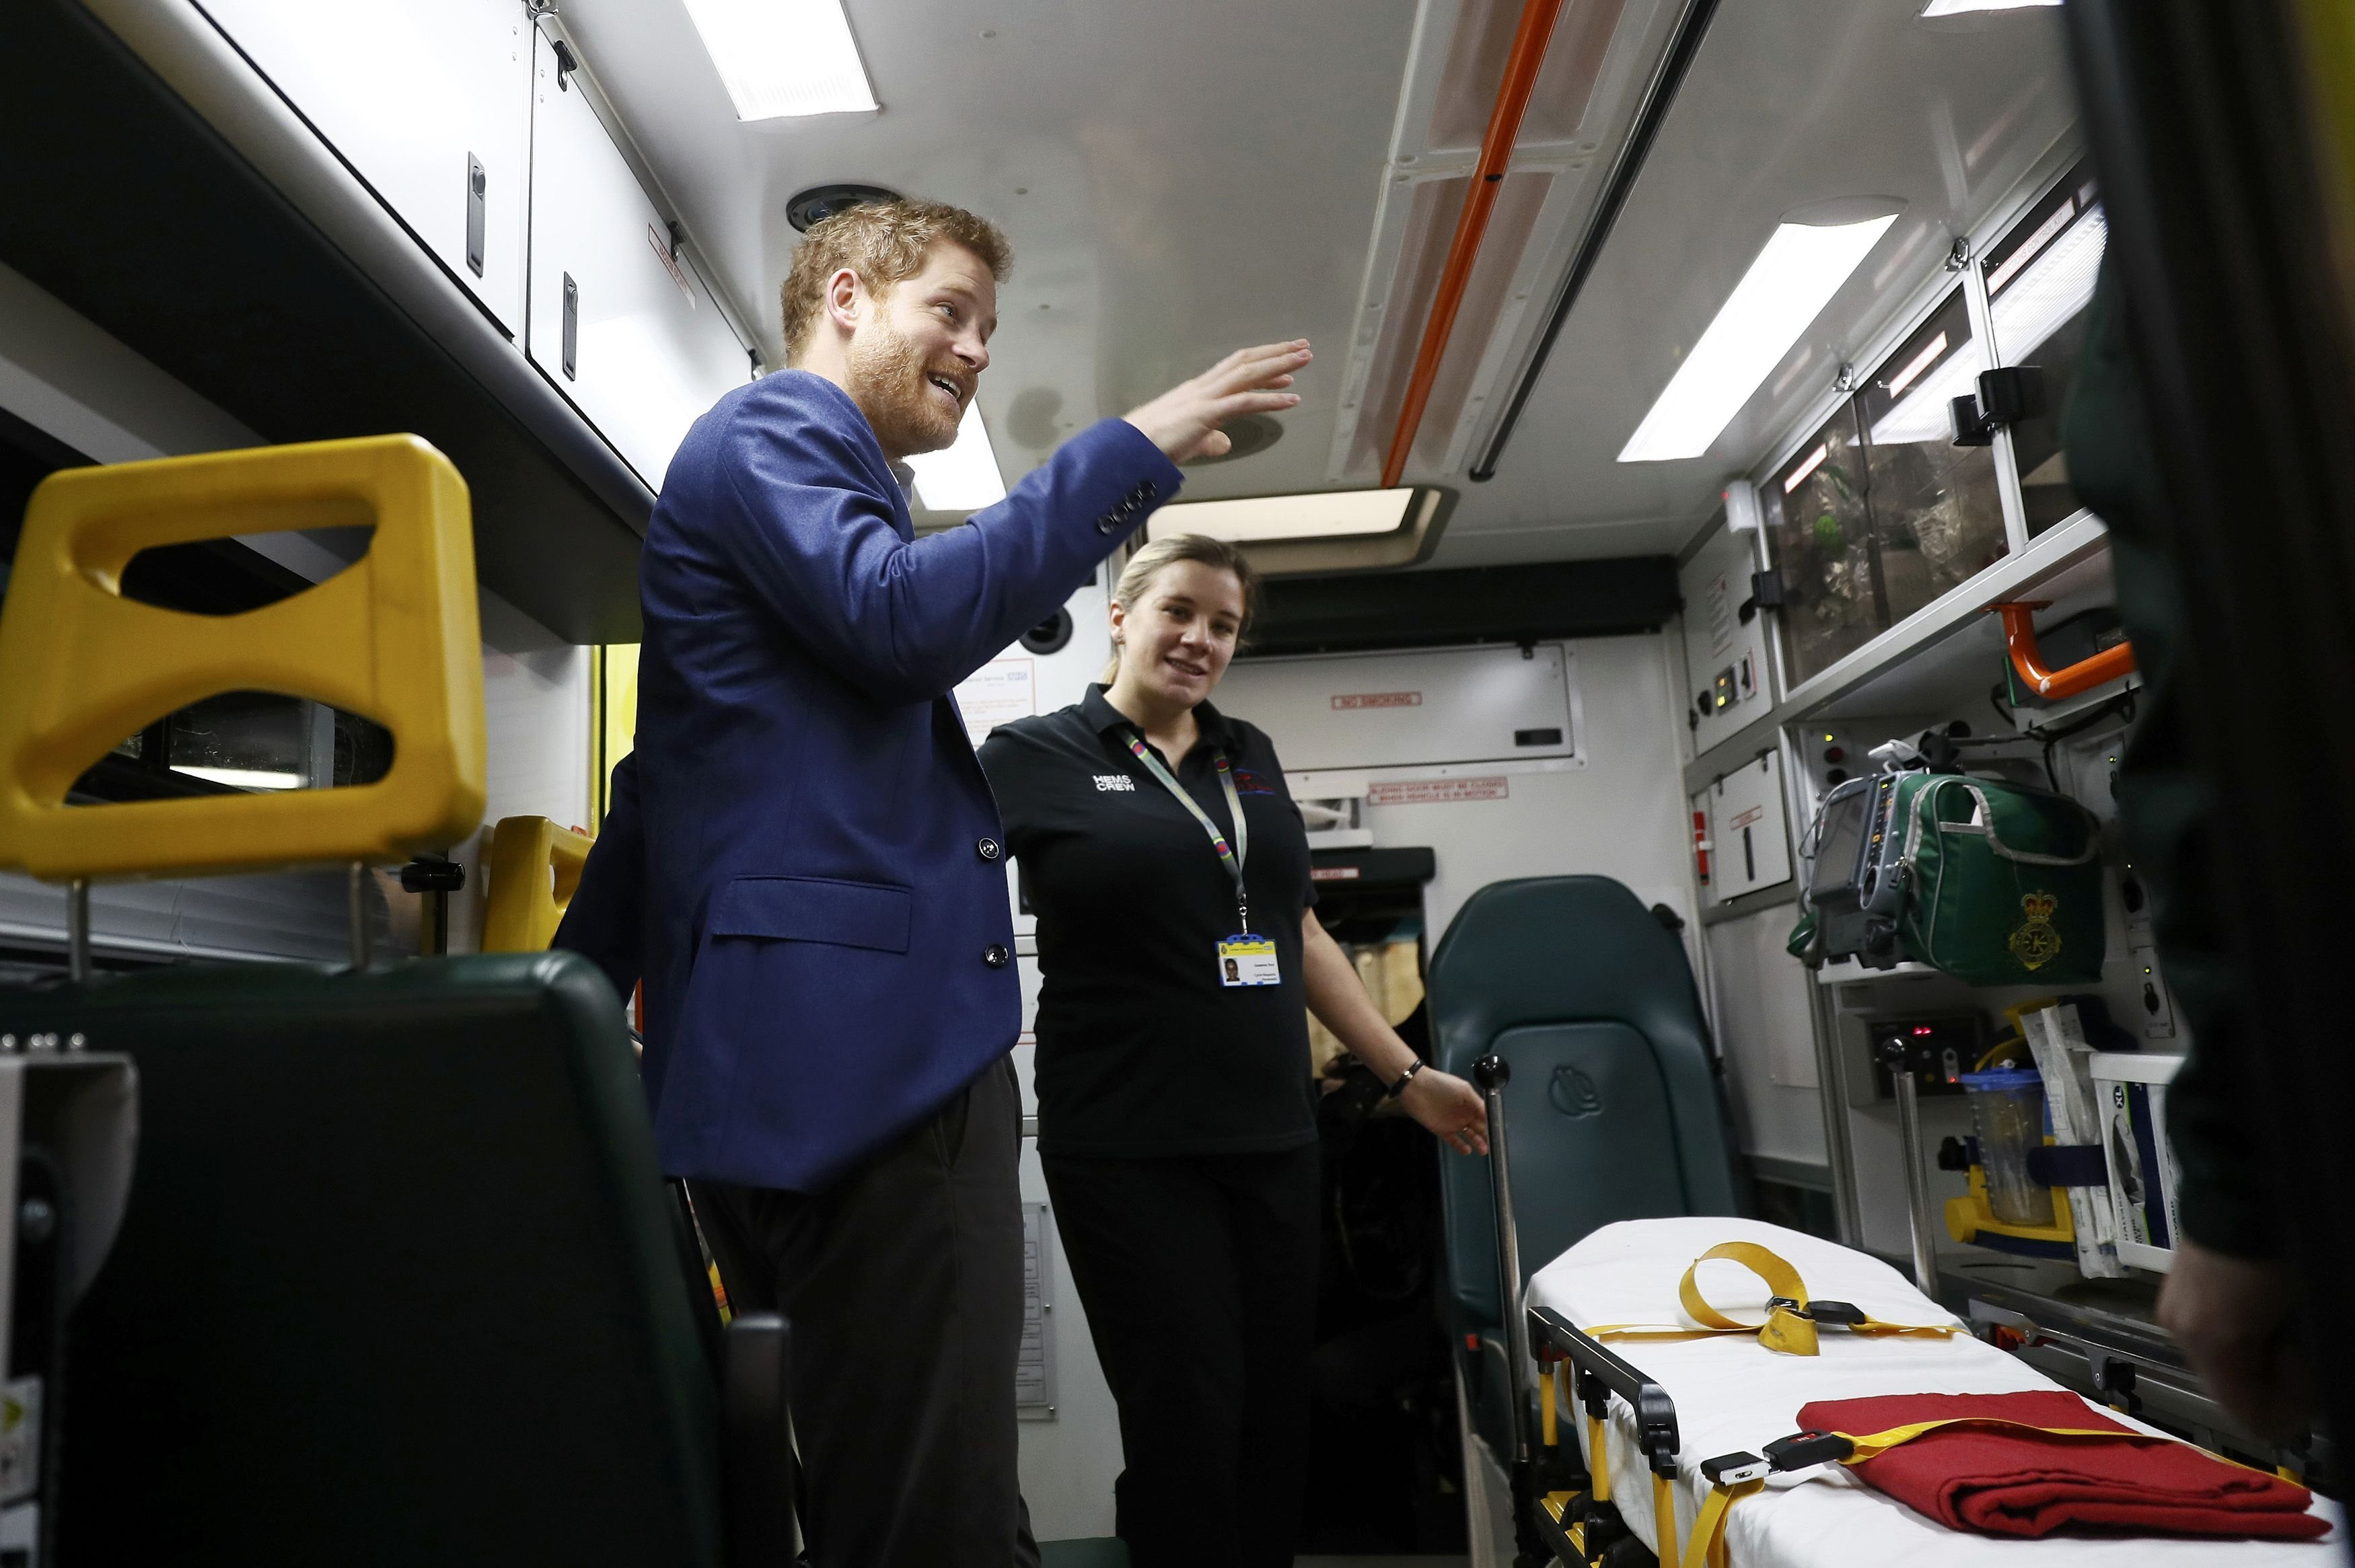 Prince Harry talks to medical staff in an ambulance as part of the Heads Together campaign at the London Ambulance Service in central London, Britain February 2, 2017